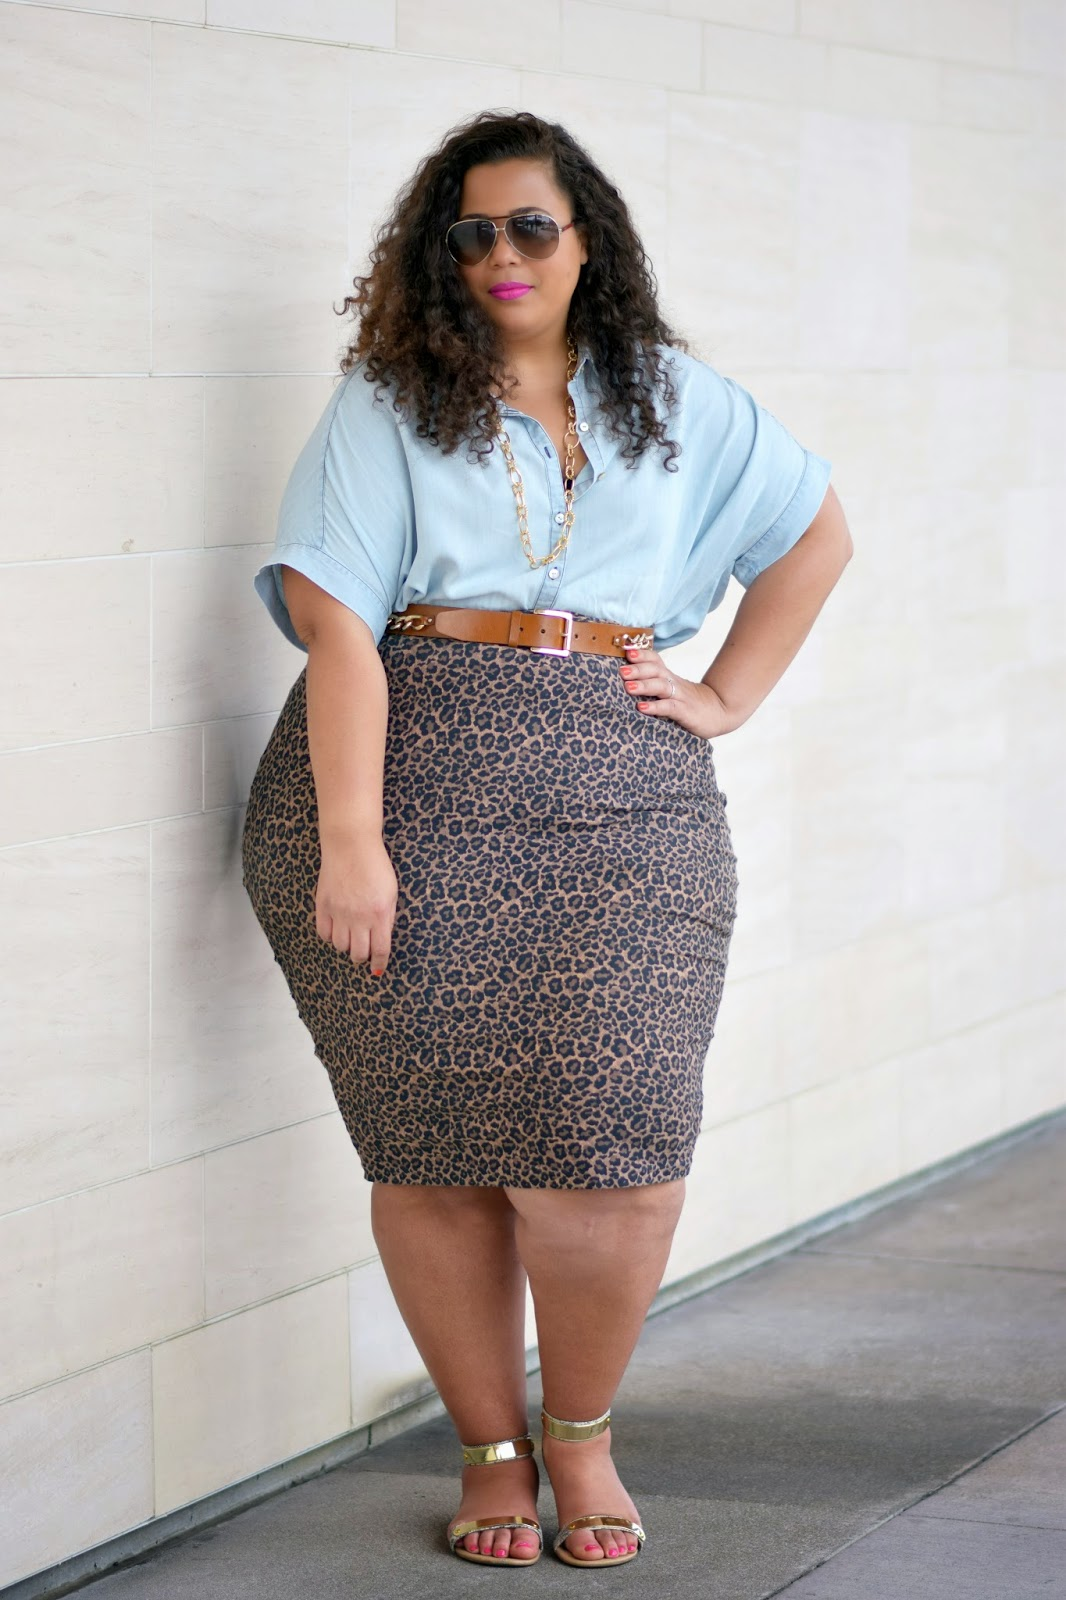 Plus size chambray shirt outfit